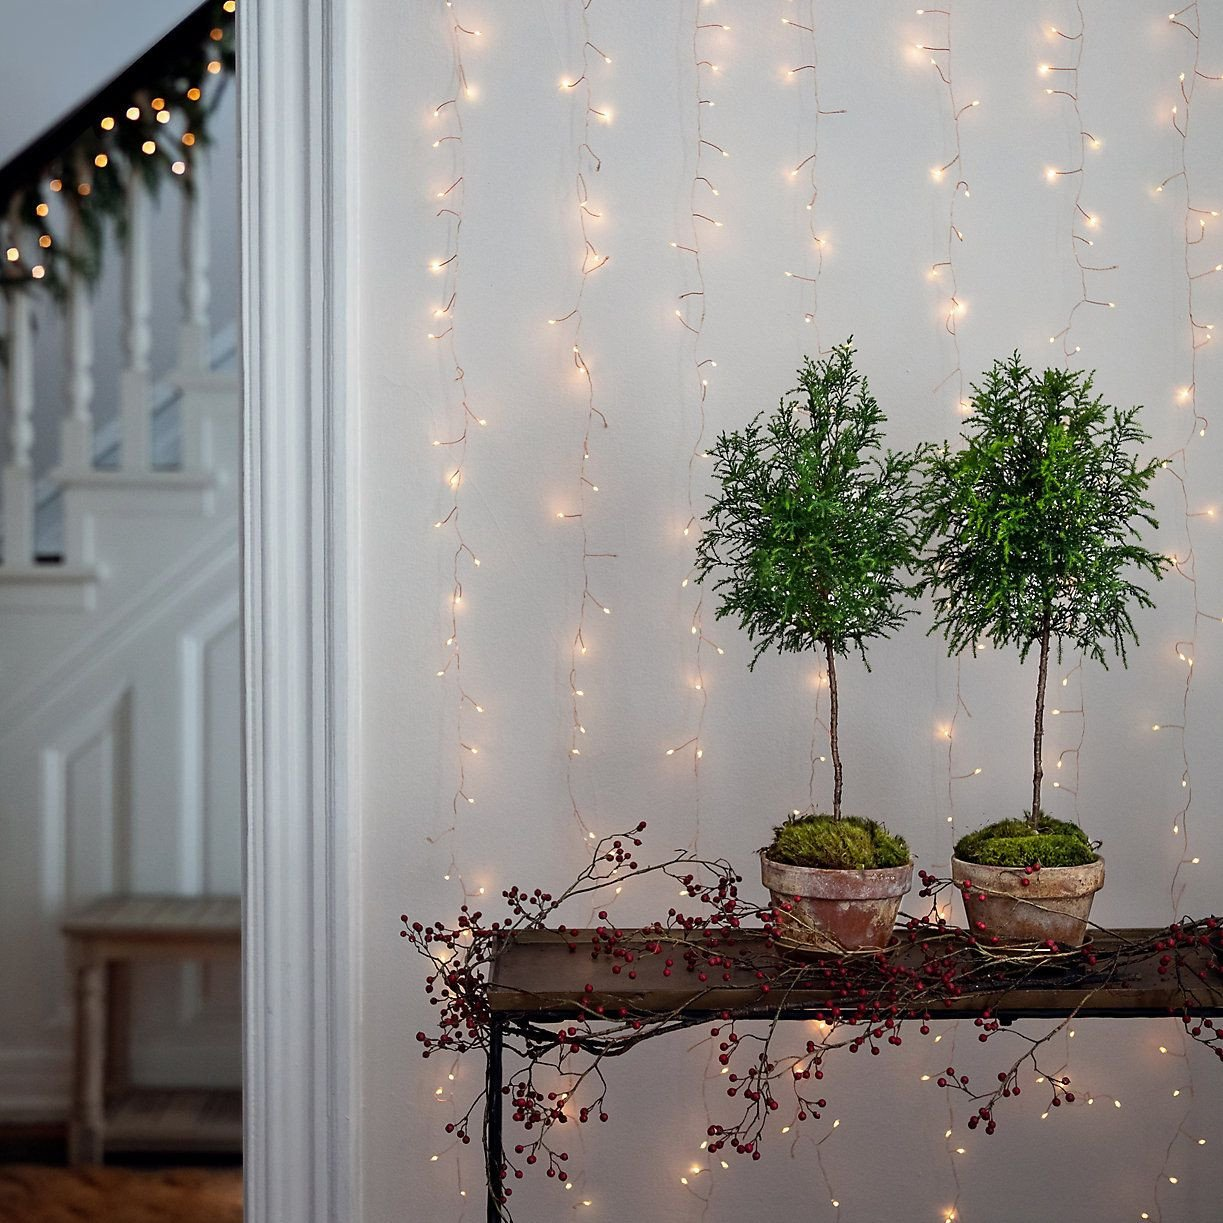 Twinkling Light for Bedroom Awesome Copper Curtain Lights Curtainlights Lighting Stringlights